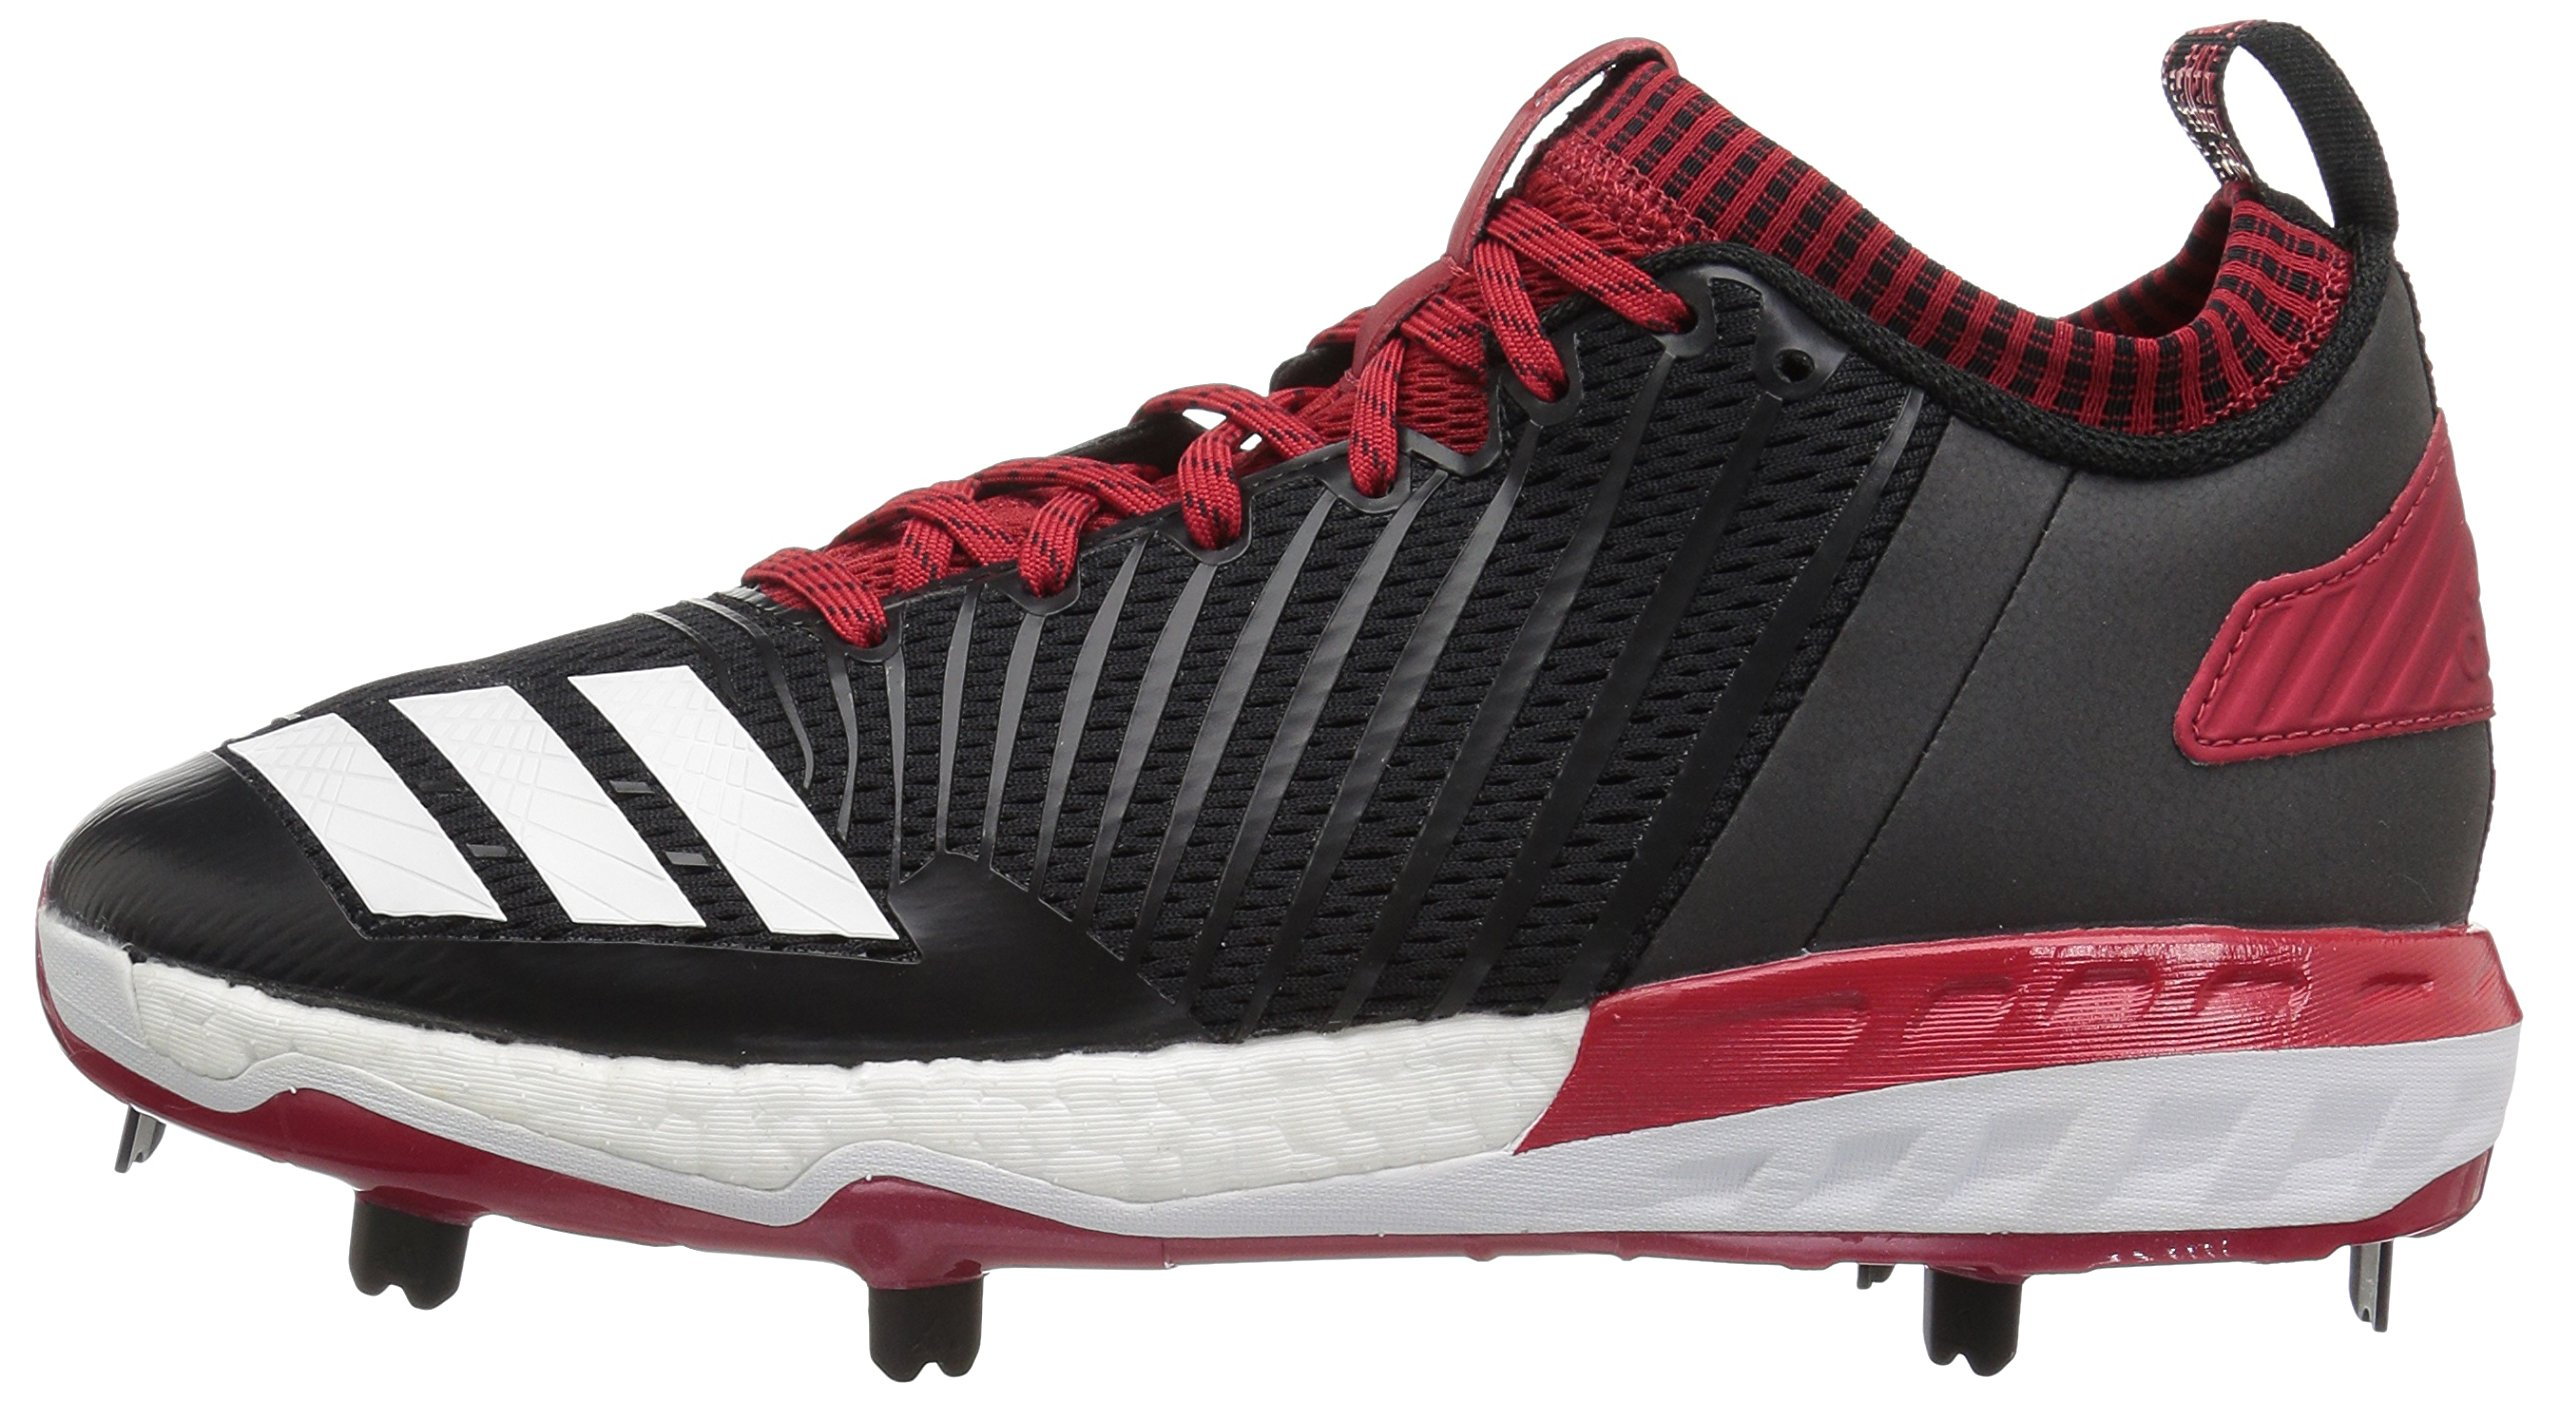 adidas Men's Freak X Carbon Mid Baseball Shoe, Black/White/Power RED, 7.5 Medium US by adidas (Image #5)